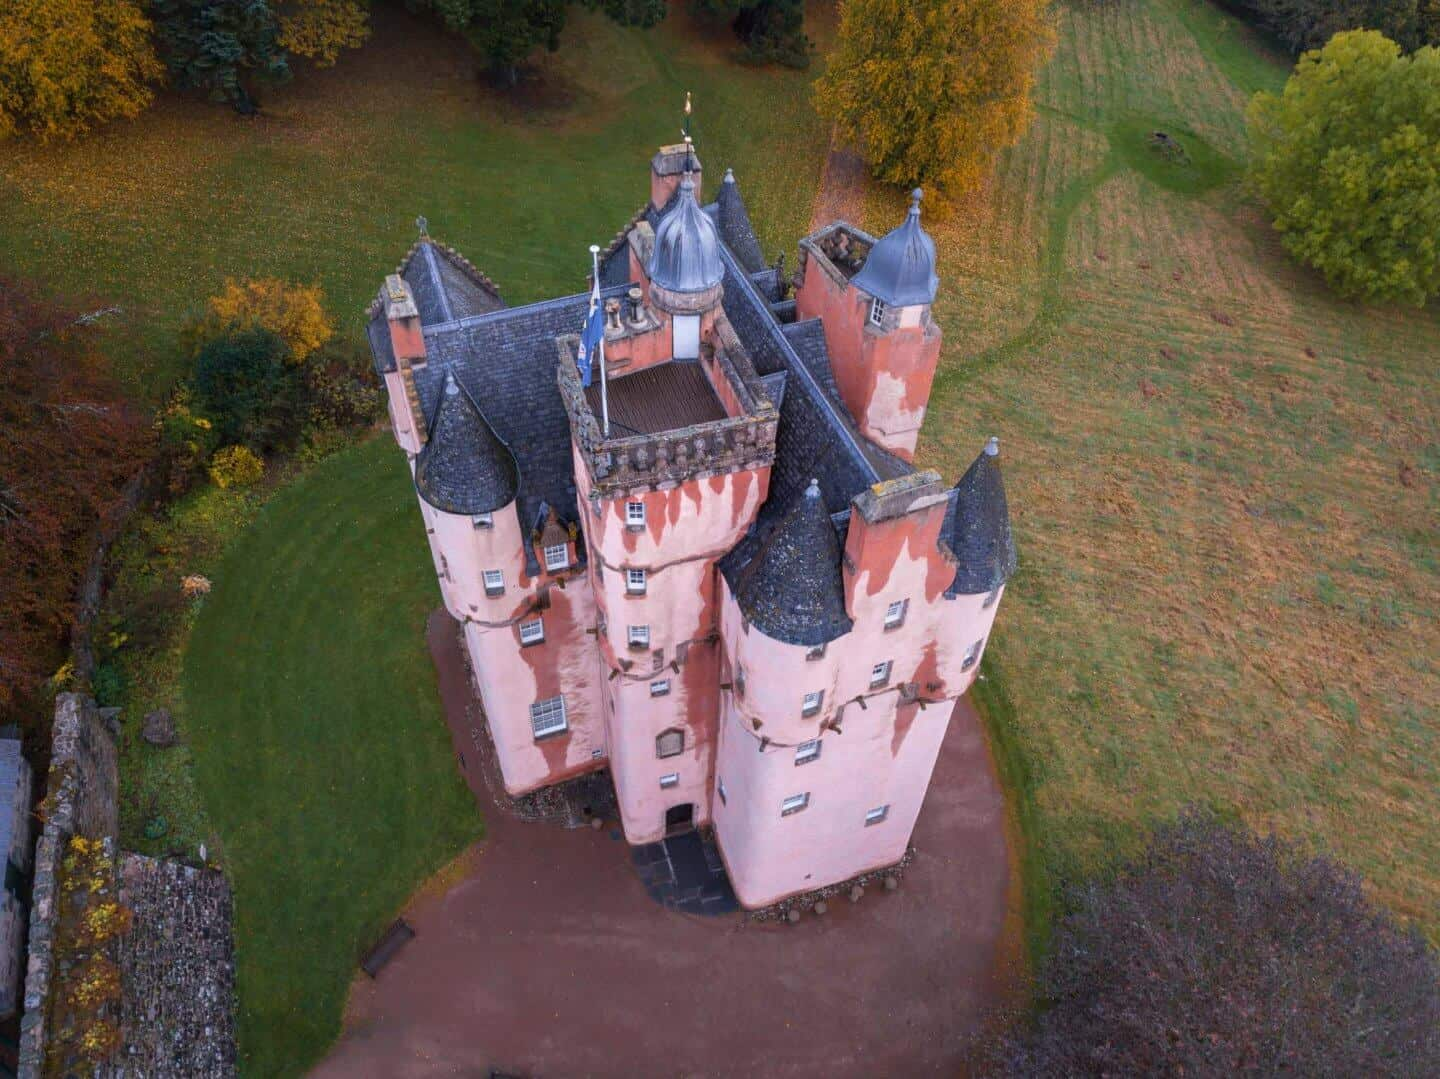 Looking down at the pink, Disney-like Craigievar Castle.